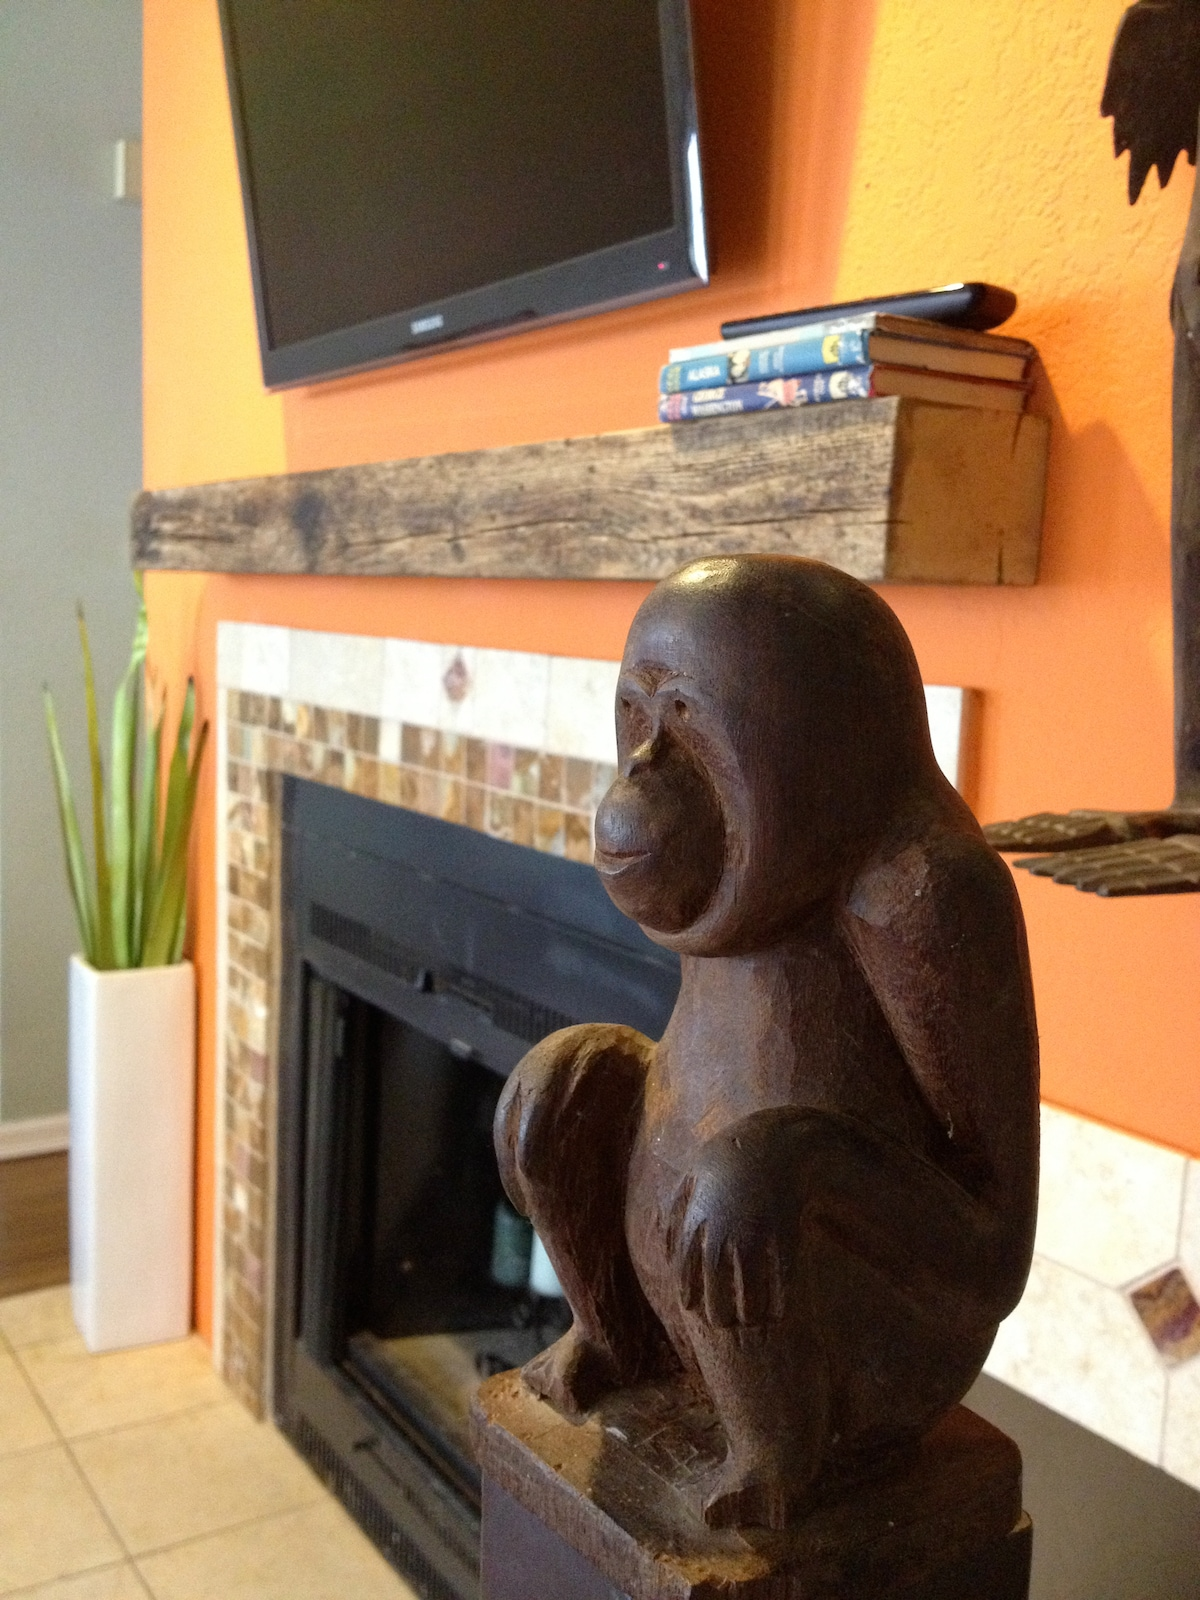 Don't forget to rub the orangutan for luck before heading upstairs!